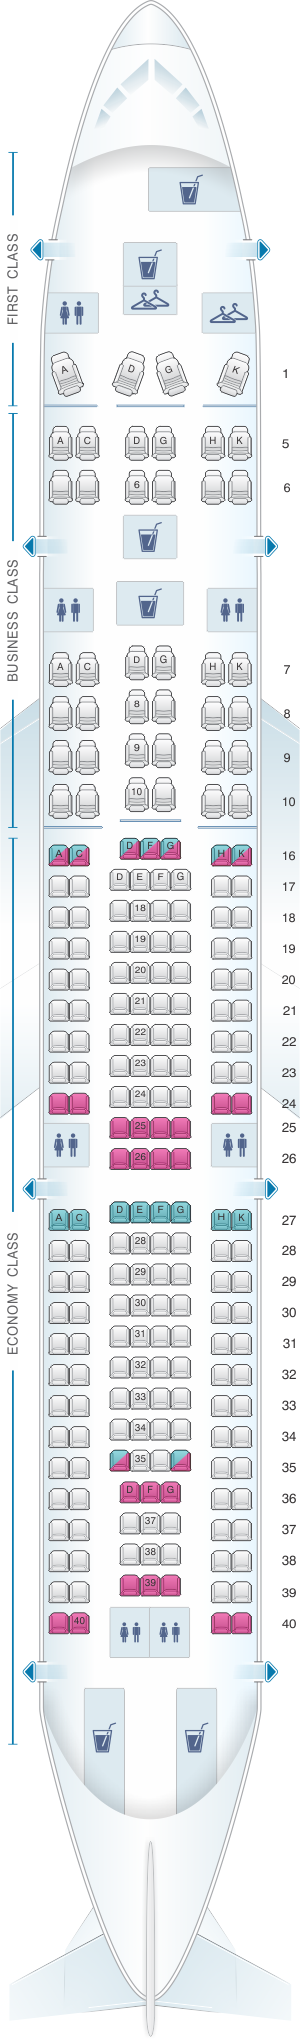 Seat map for LATAM Airlines Brasil Airbus A330 200